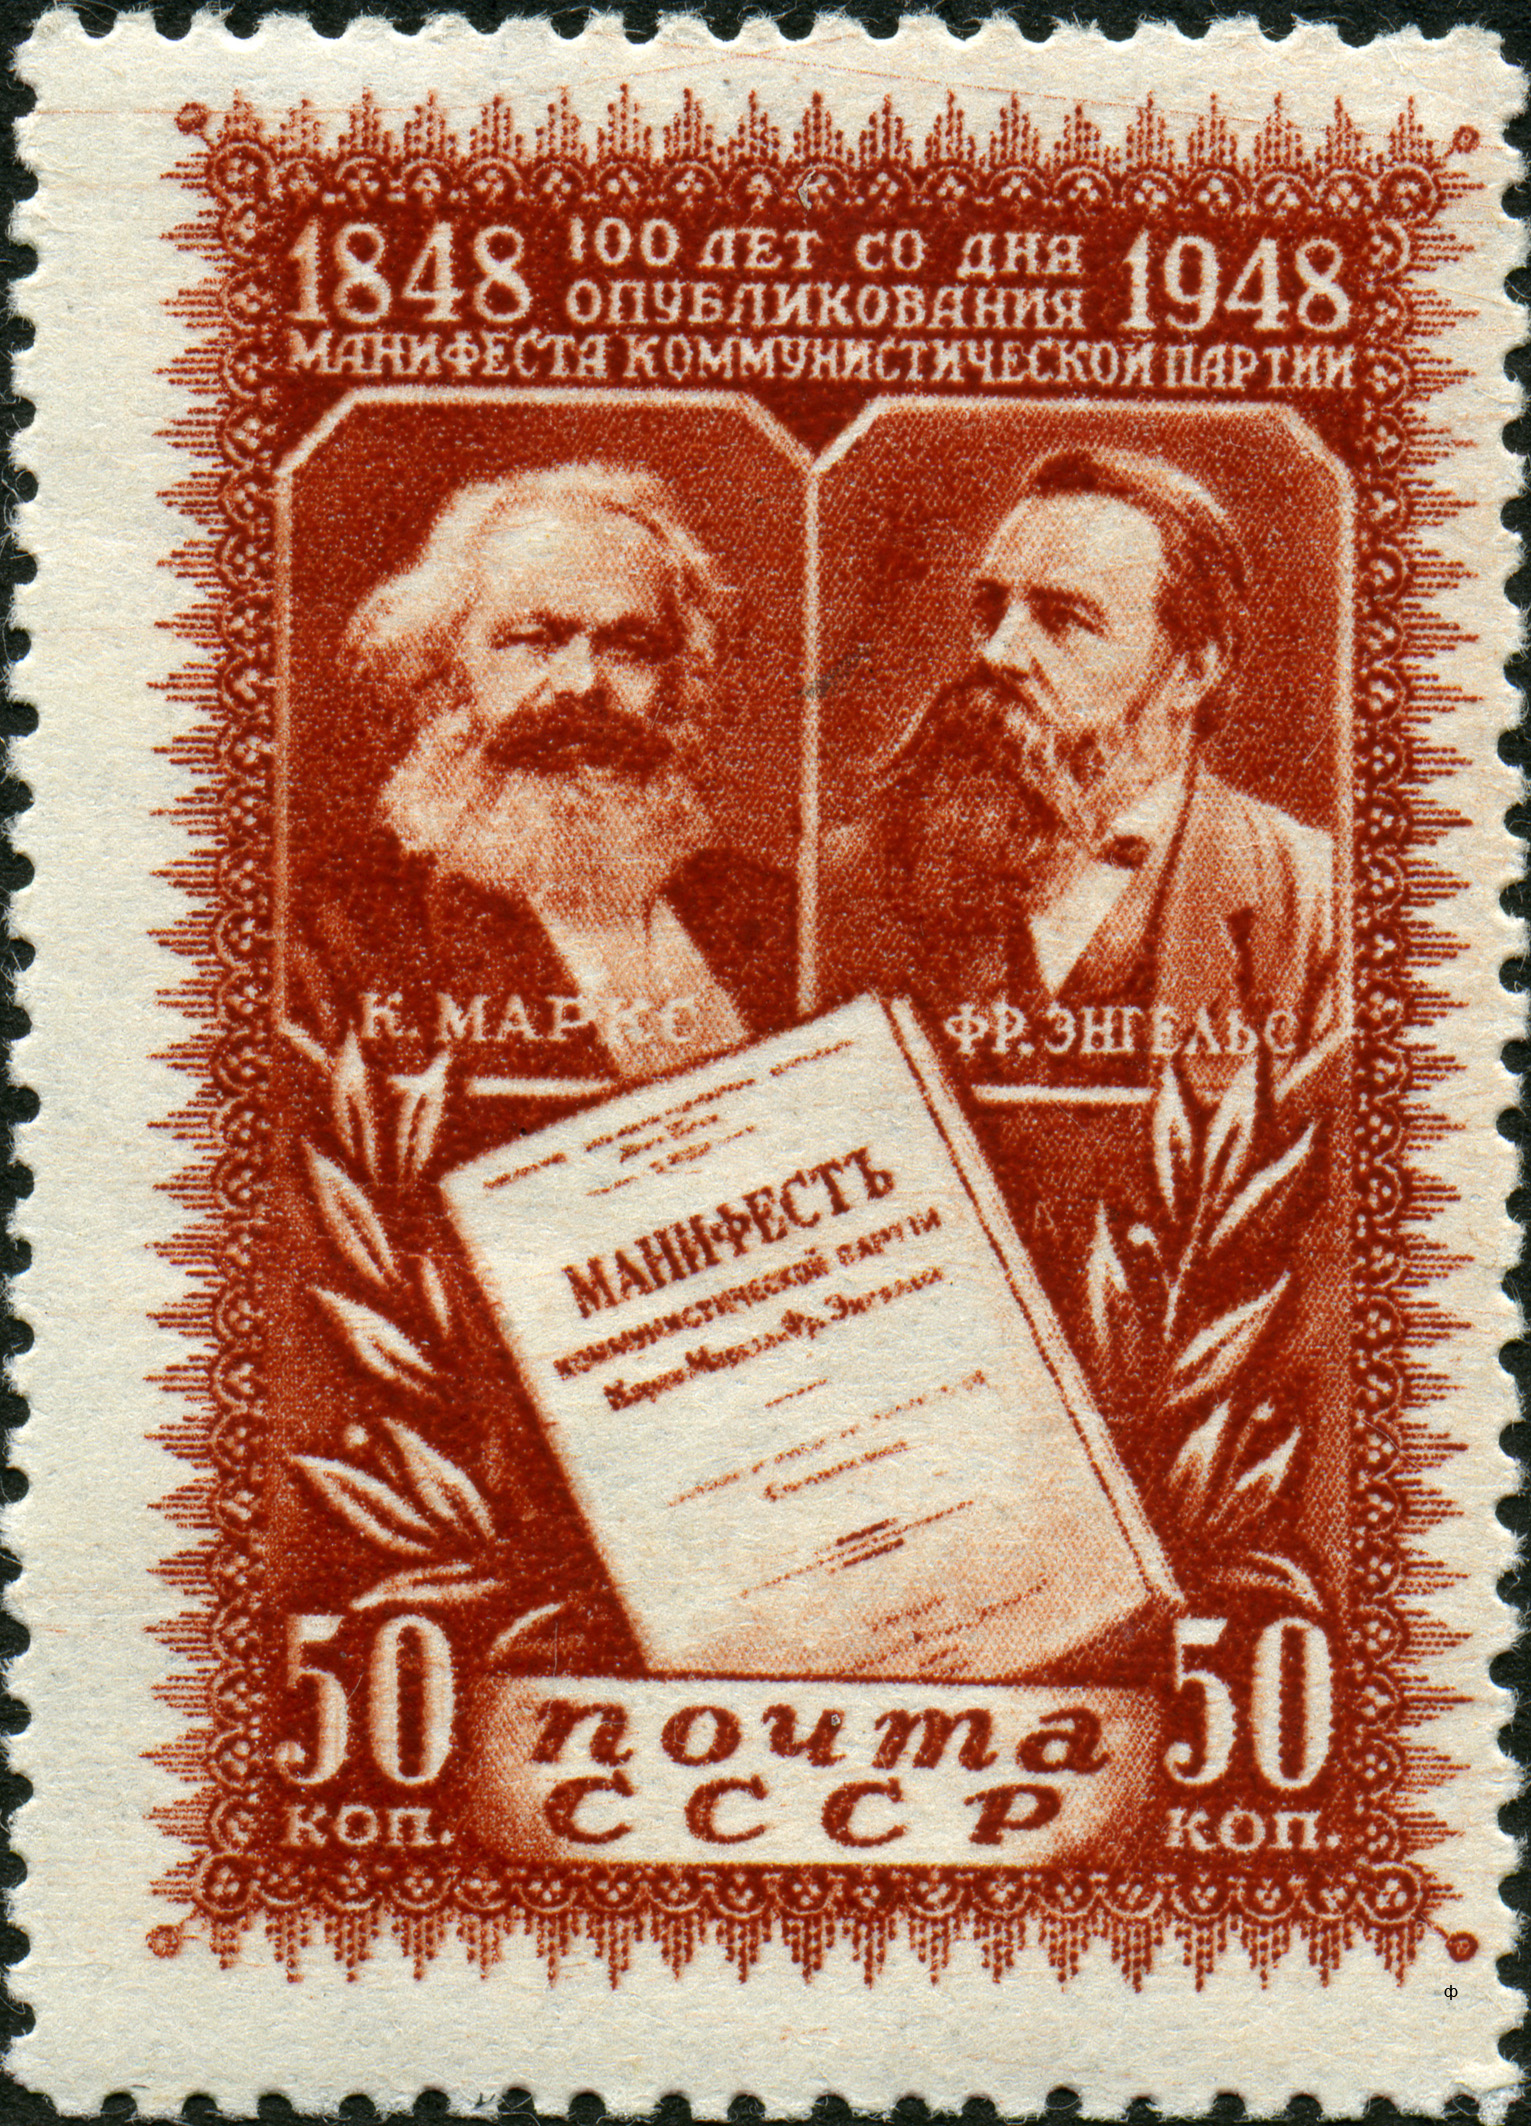 """a review of karl marx and friedrich engels communist manifesto of 1848 The many biographies of karl marx bring out a basic paradox in marxism  of  history,"""" as the young marx and his friend and collaborator friedrich engels  to  the new left review but no longer identifies as a revolutionary socialist,   hastily composed in early 1848, the manifesto of the communist party."""